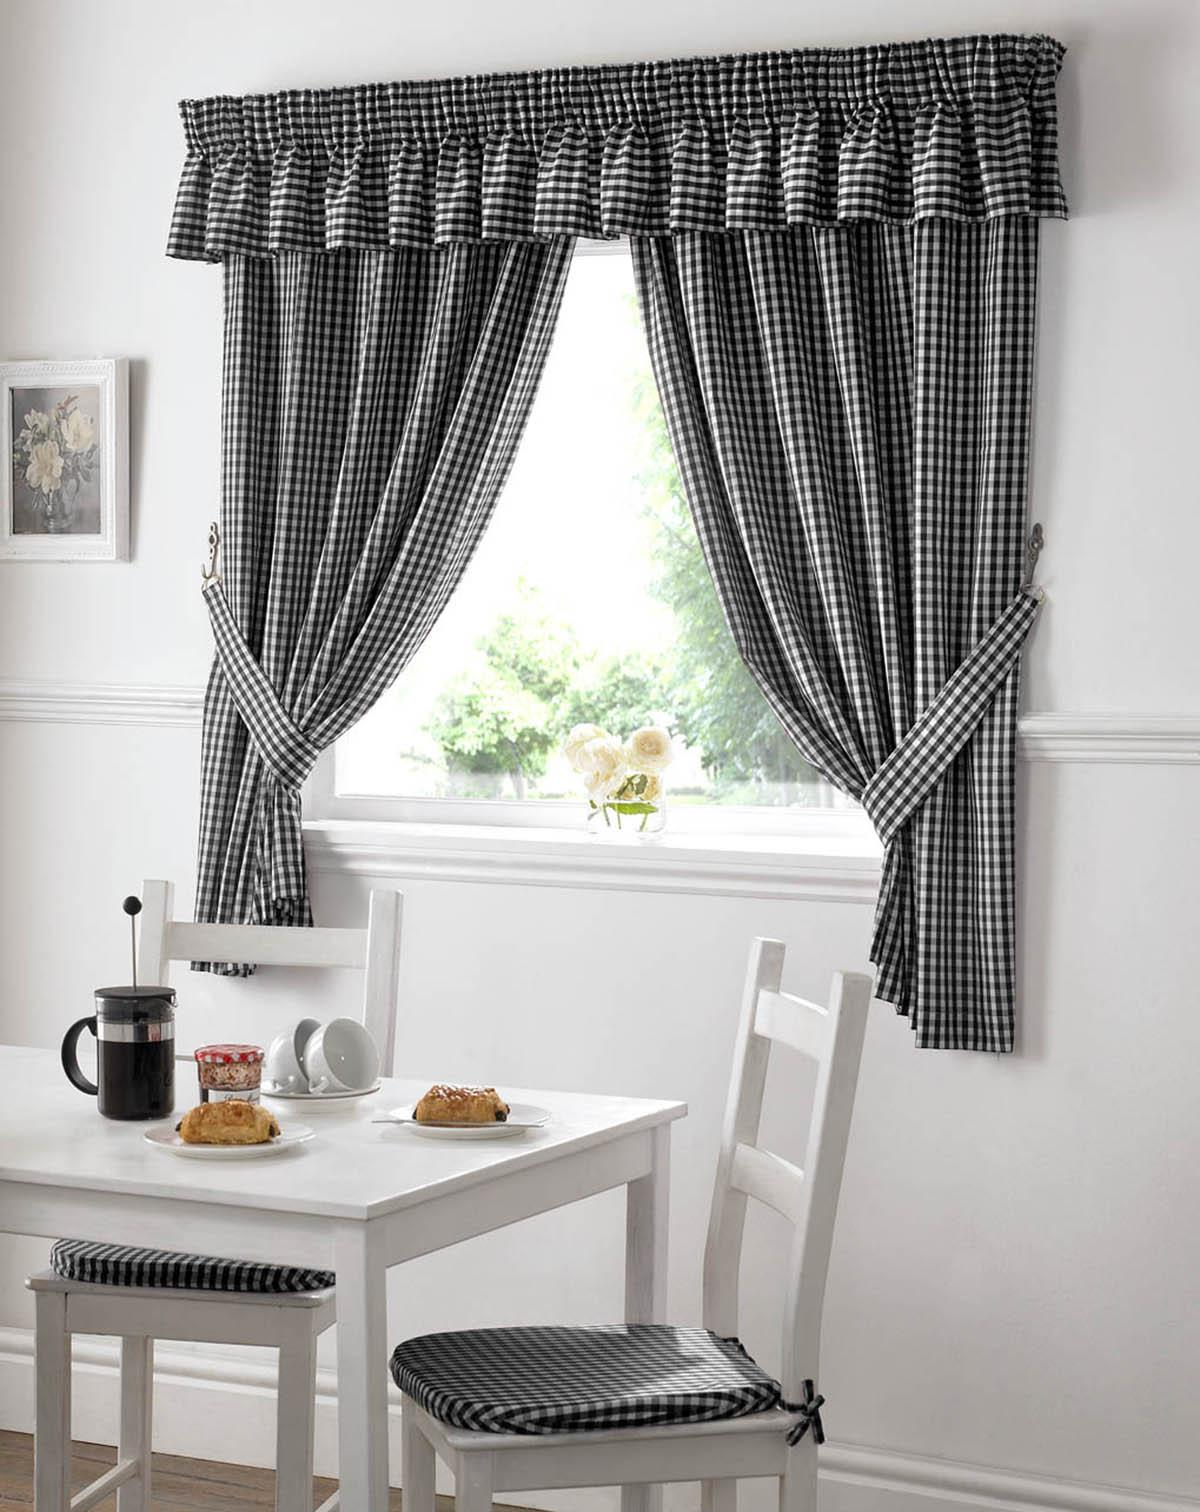 shade tie buffalo and white of gray brylanehome up black curtain check beautiful curtains veritas window vox unique checkered navy info amazon